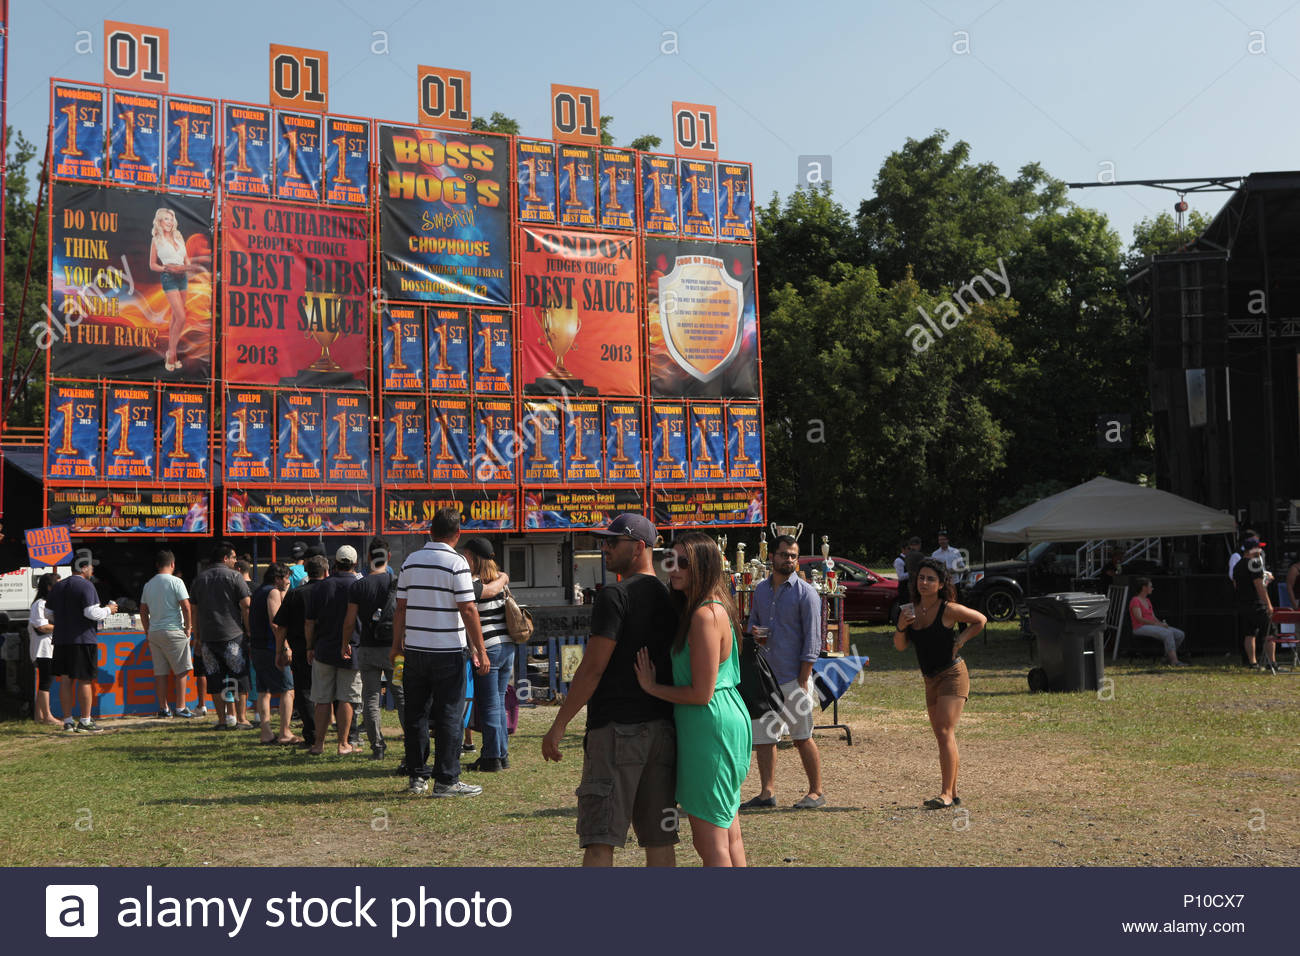 Woodbridge, Ontario, Canada.  August 2014 --- Vendors set up giant advertising boards above their cooking area to attract visitors during the Woodbrid - Stock Image